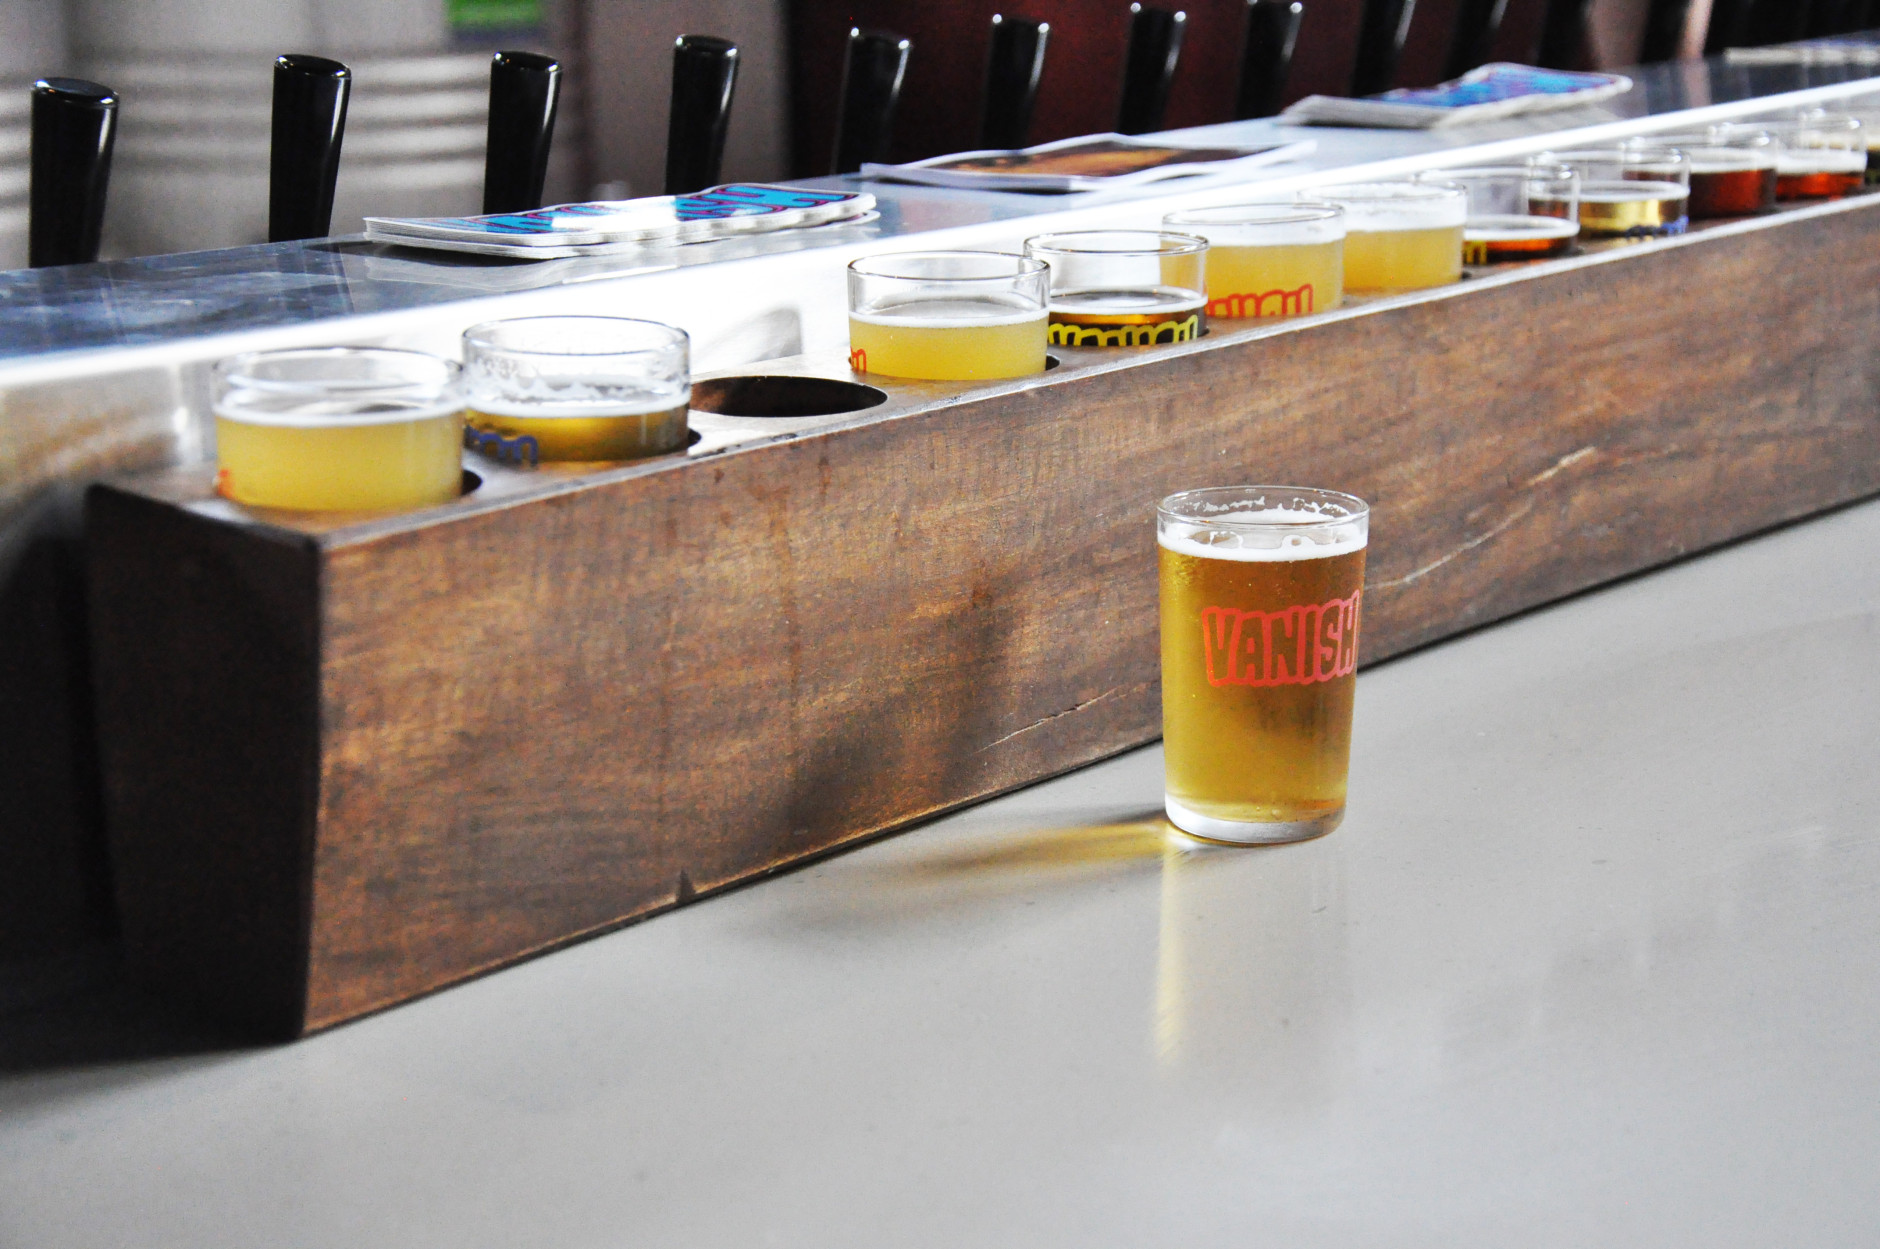 There are more than 16 beers on the menu at Vanish Brewery's tasting room. Owner Jonathan Staples says on the weekends, the Lucketts, Virginia brewery sees between 400 and 600 guests. (WTOP/Rachel Nania)